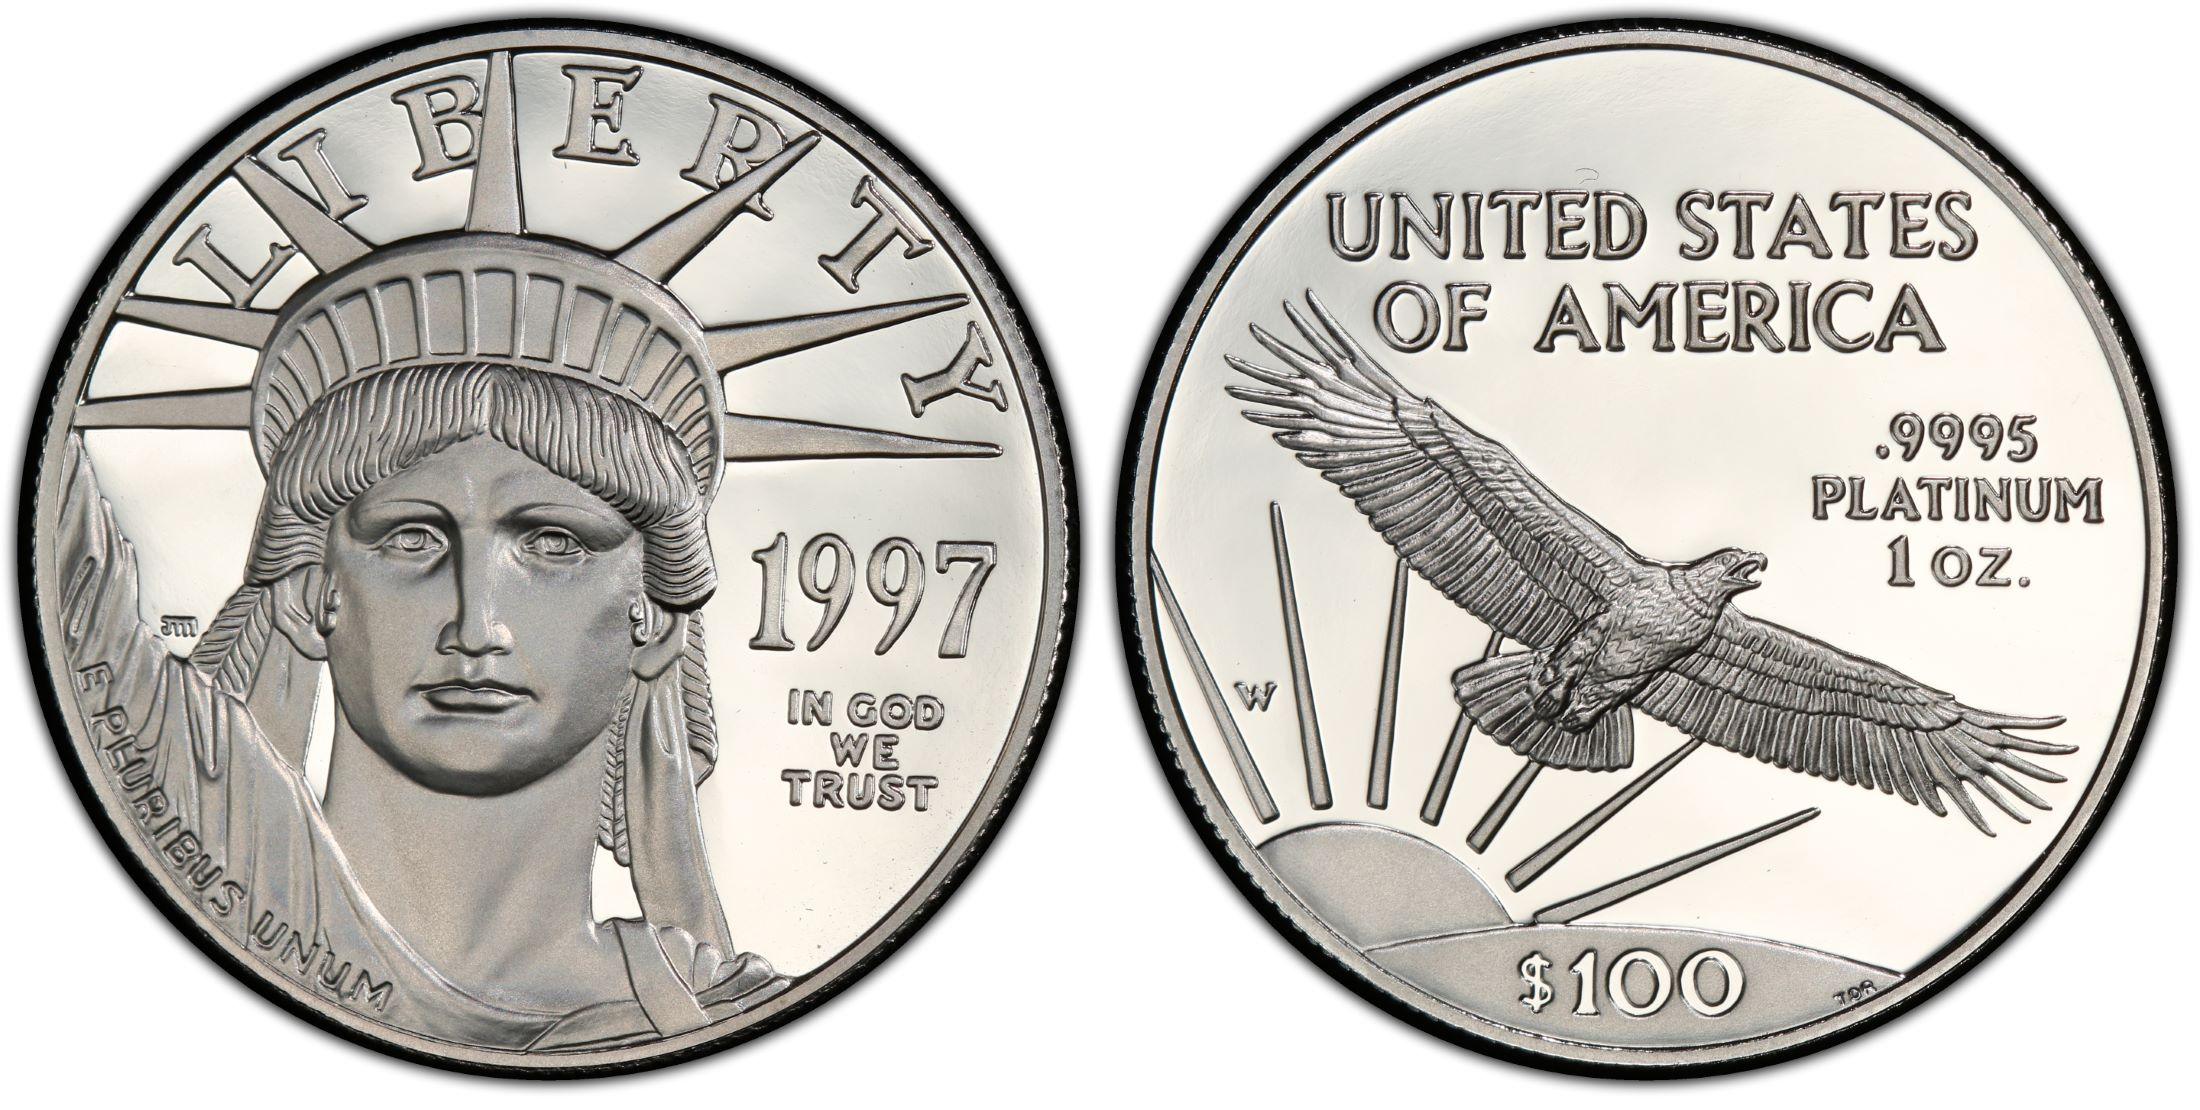 bars high bullion platinumamericaneagles dakota precious and platinum coin metals